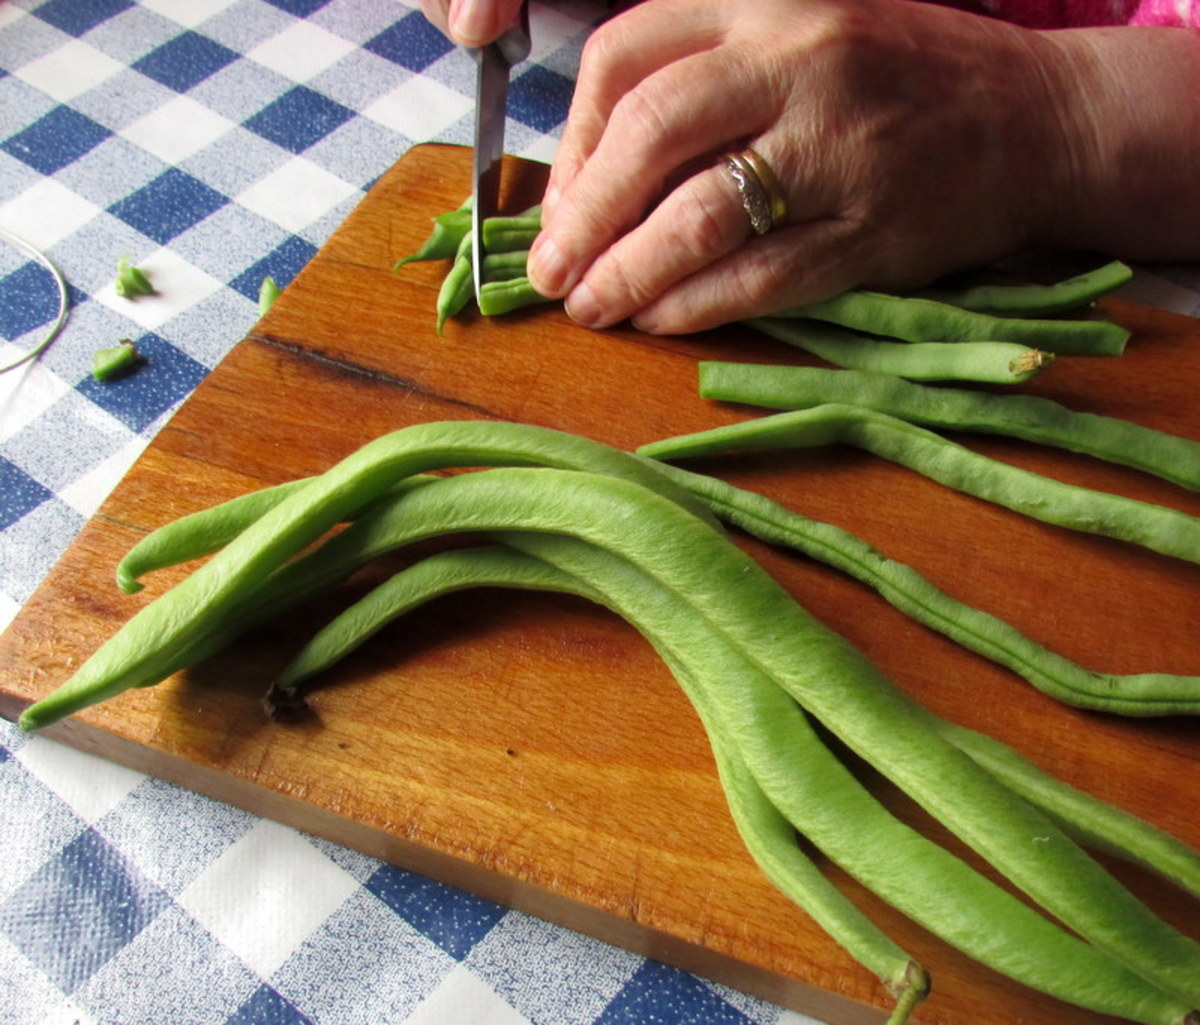 Preparing runner beans for freezing.